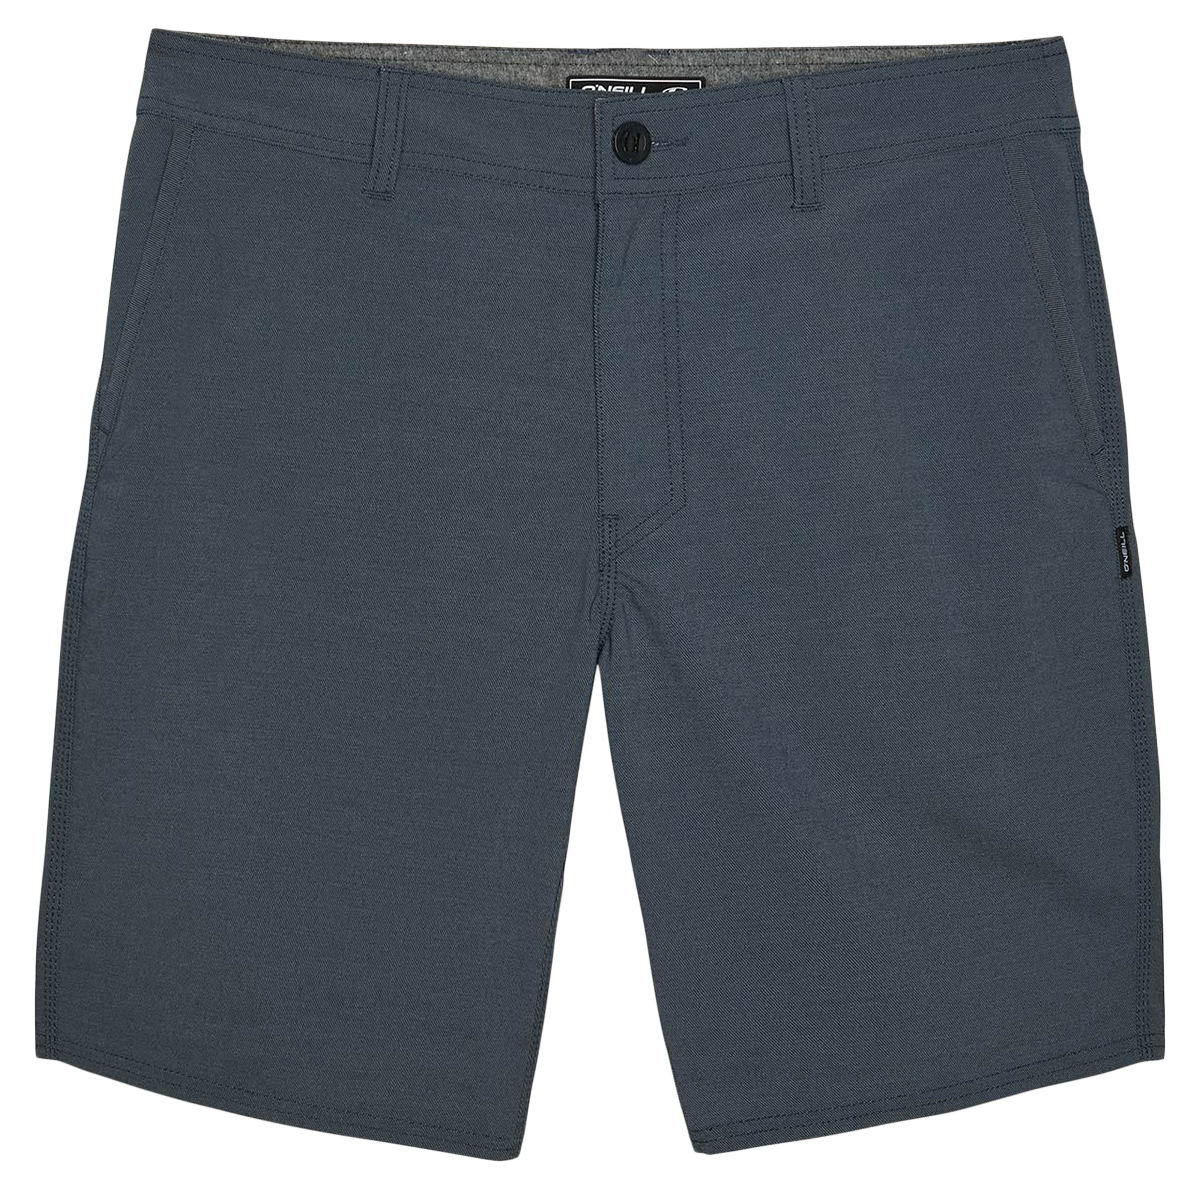 O'neill Men's Stockton Hybrid Shorts - Blue, 36